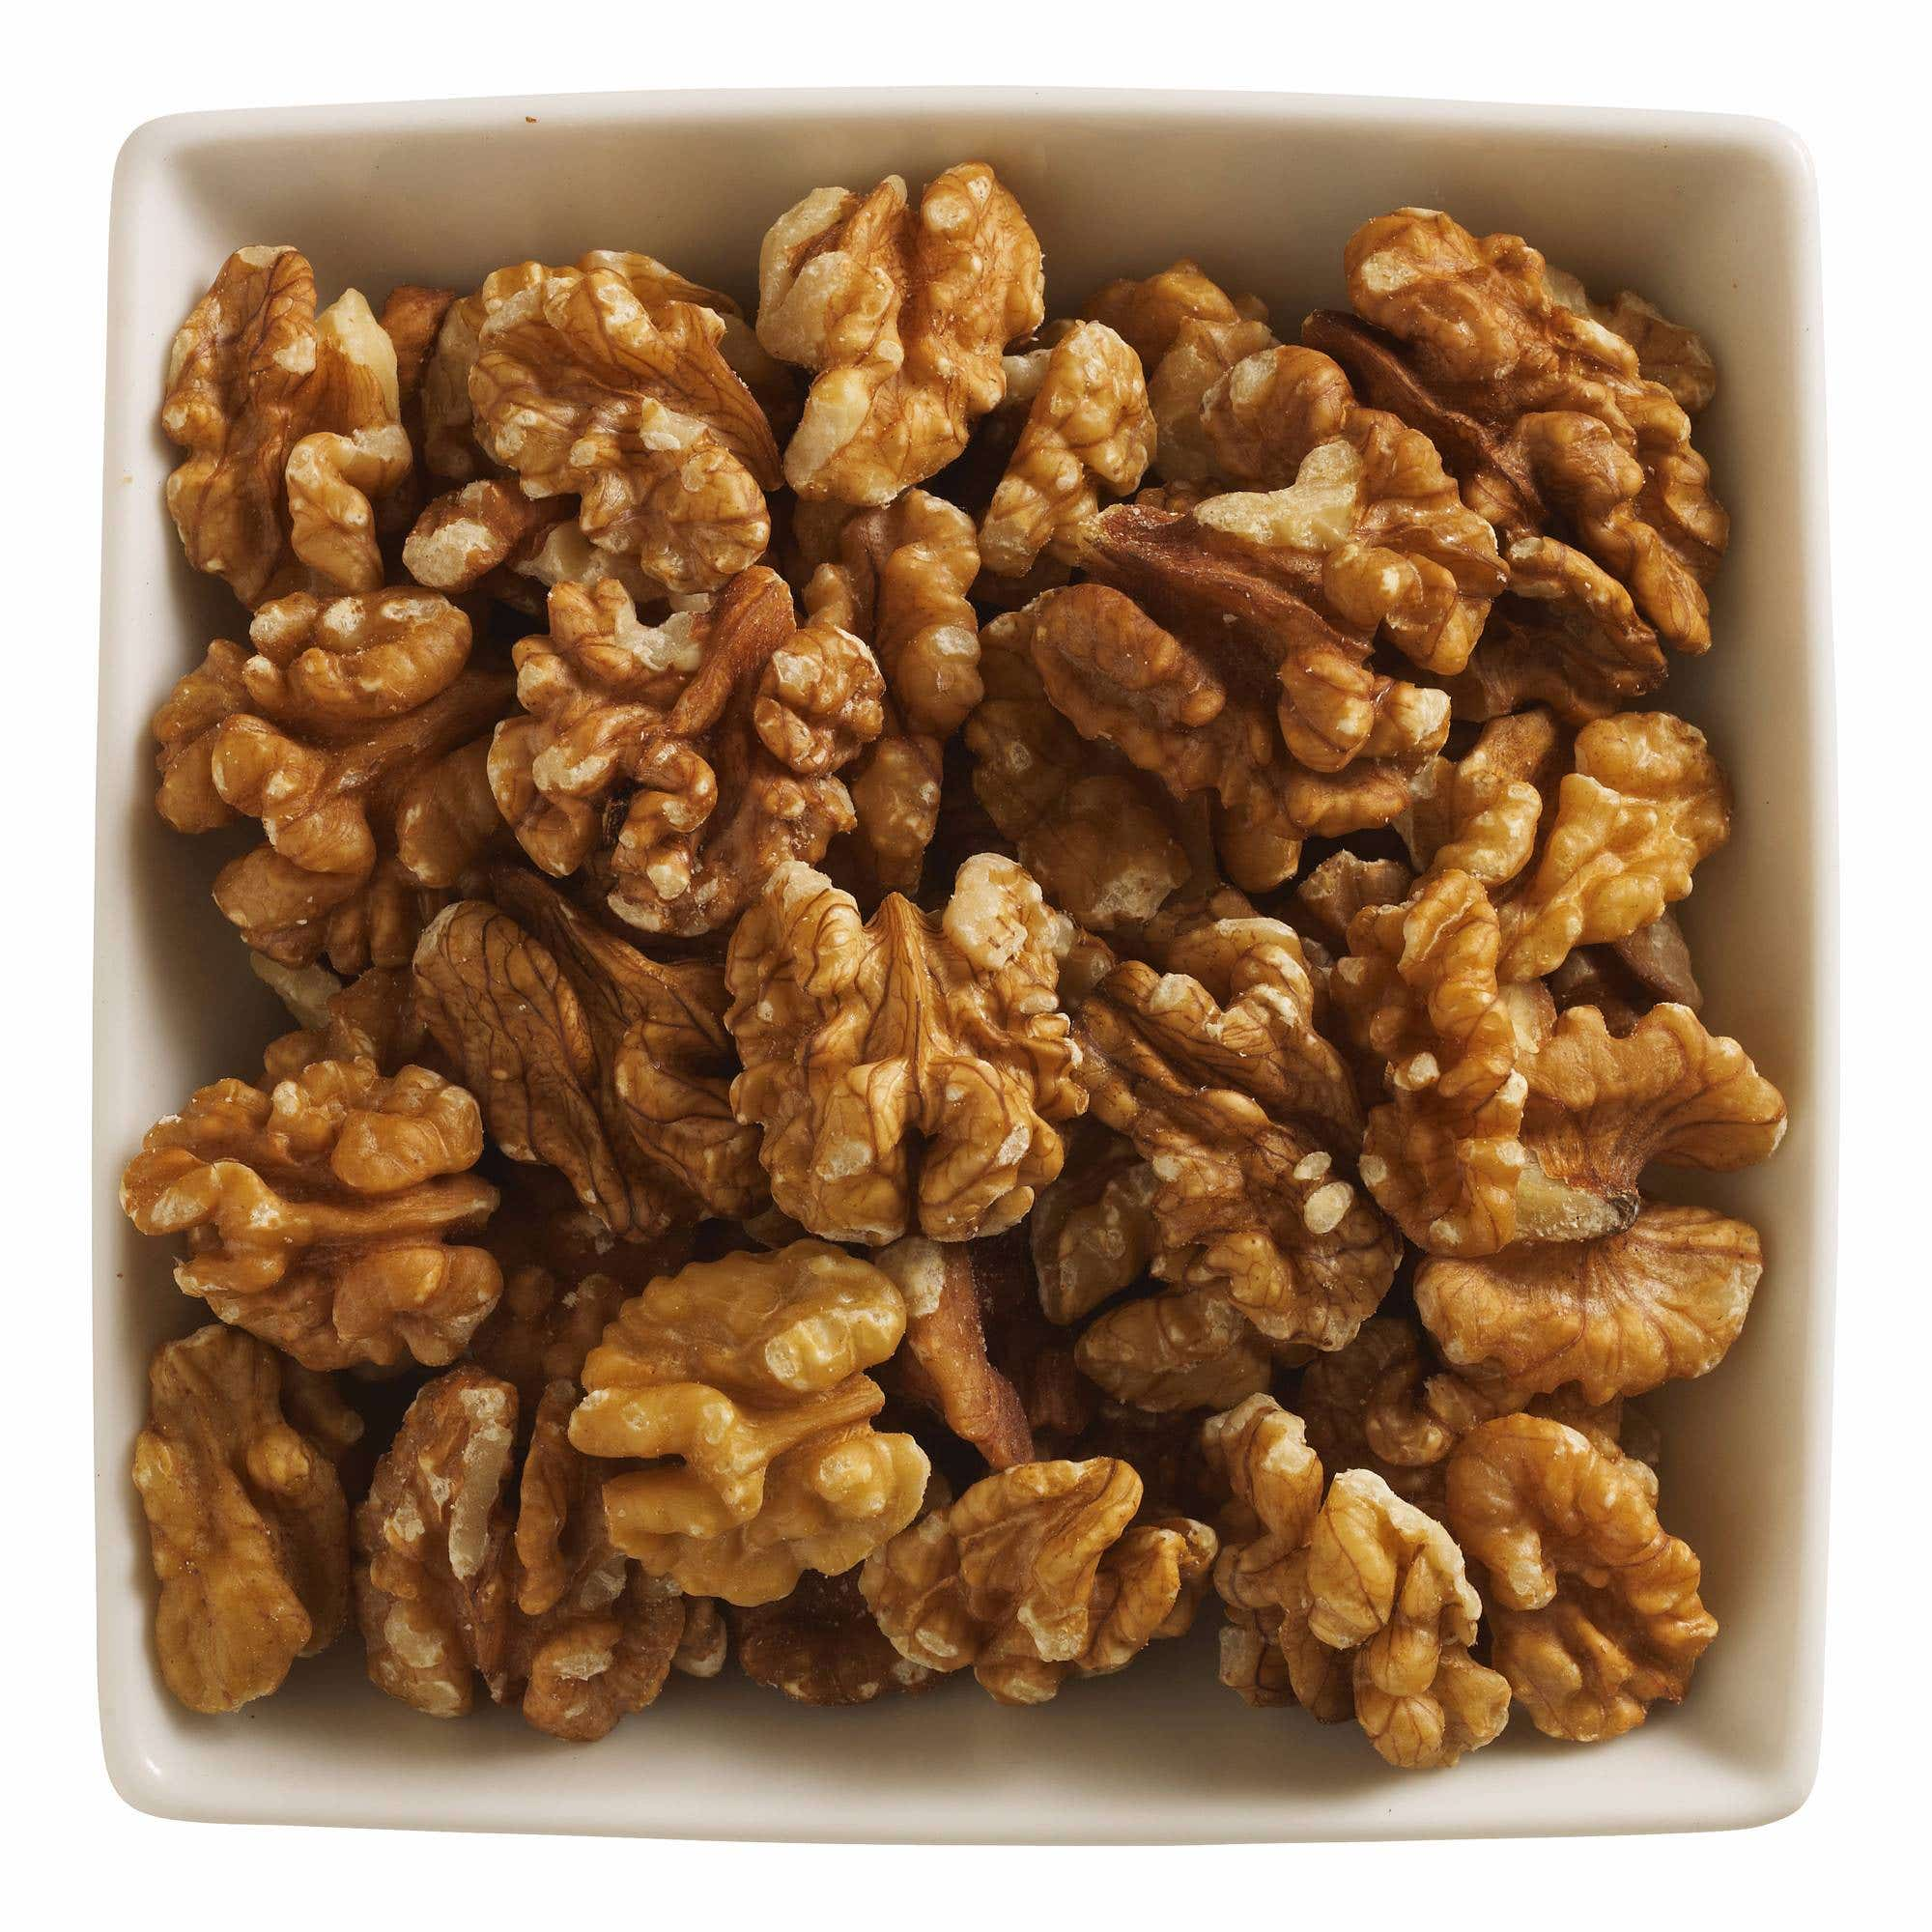 Tropical Wholefoods Organic Walnuts (6x125g) CASE